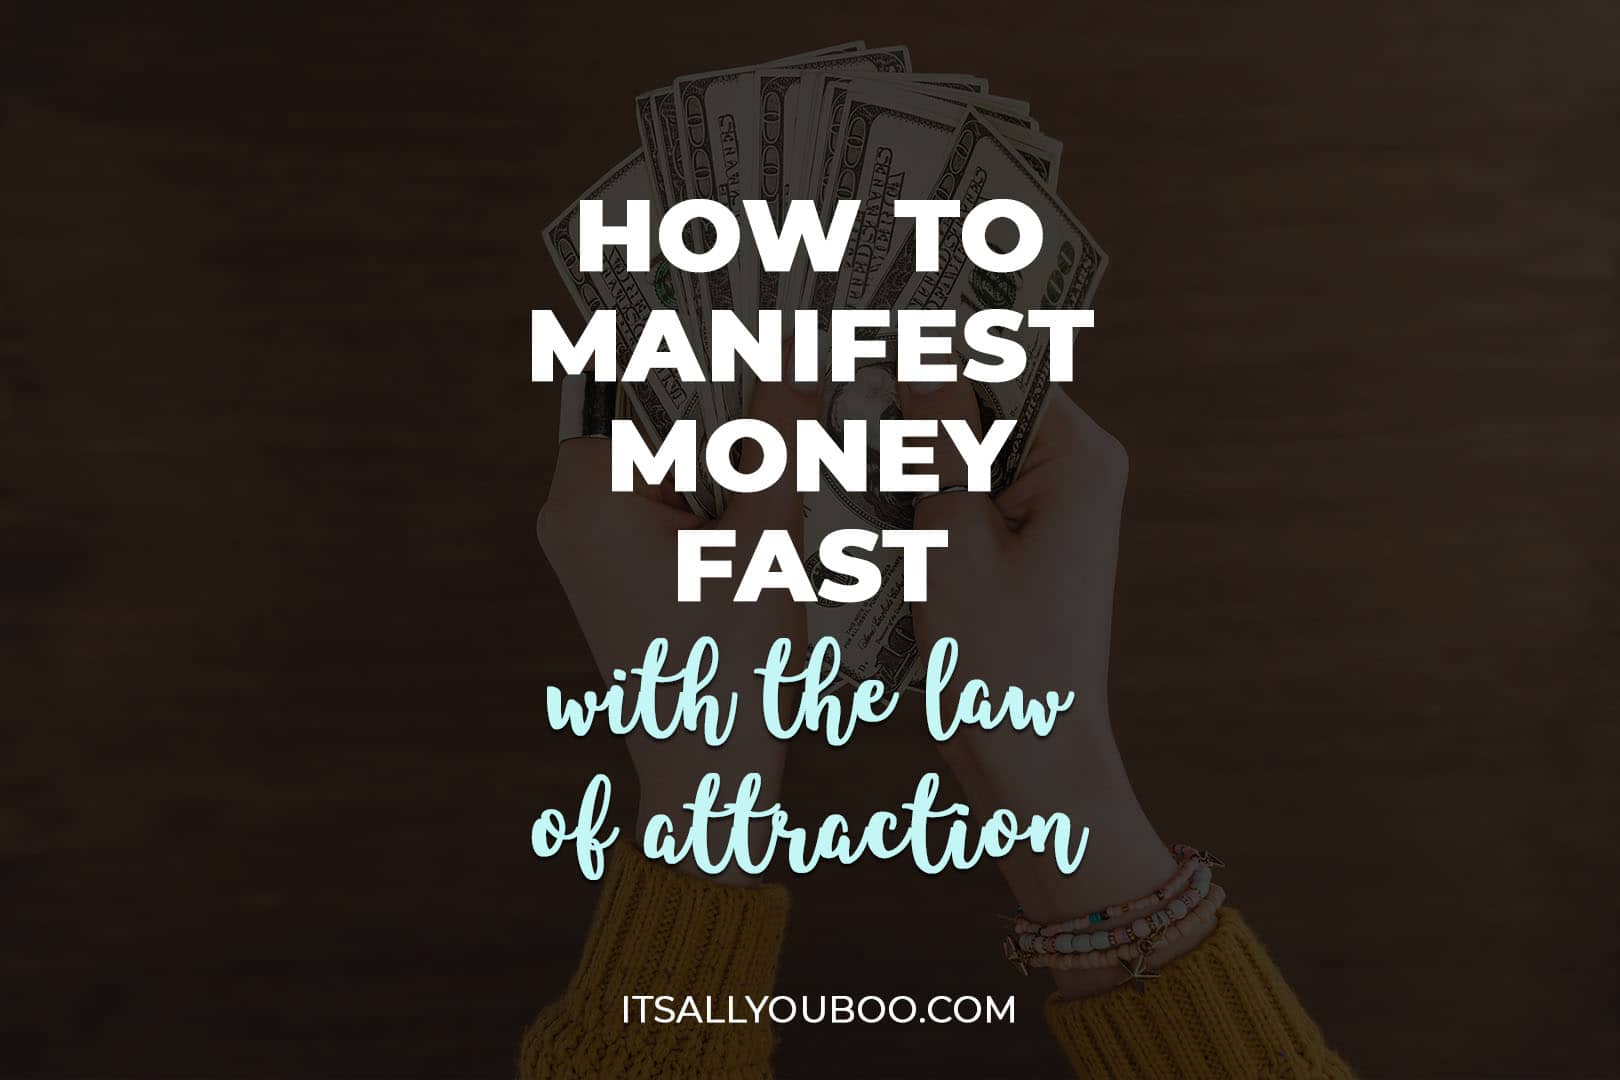 How to Manifest Money Fast with the Law of Attraction